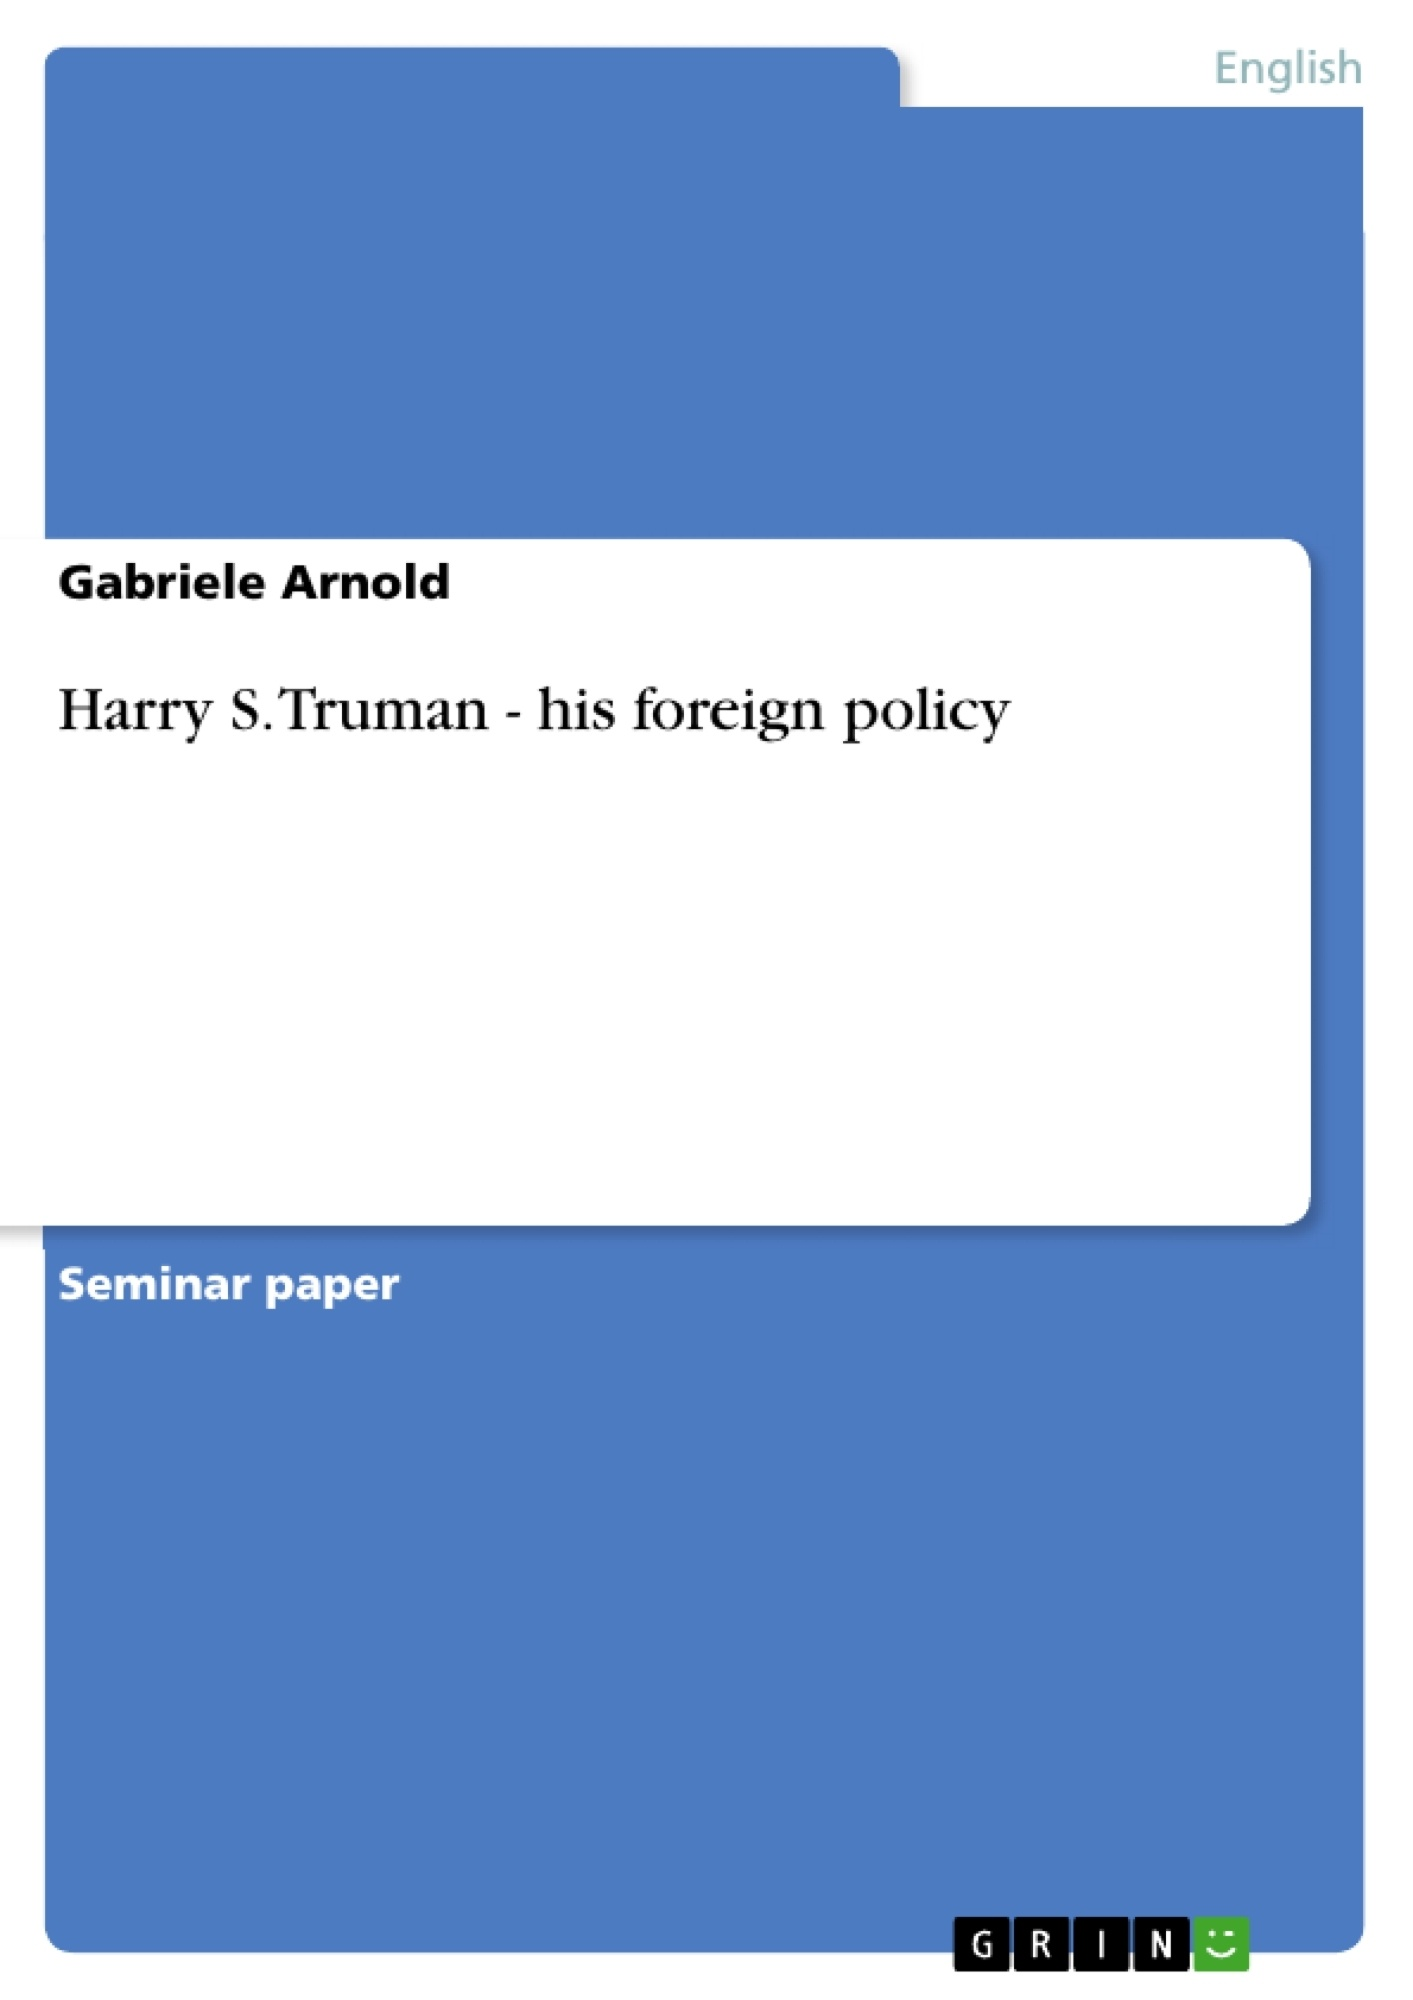 Title: Harry S. Truman - his foreign policy